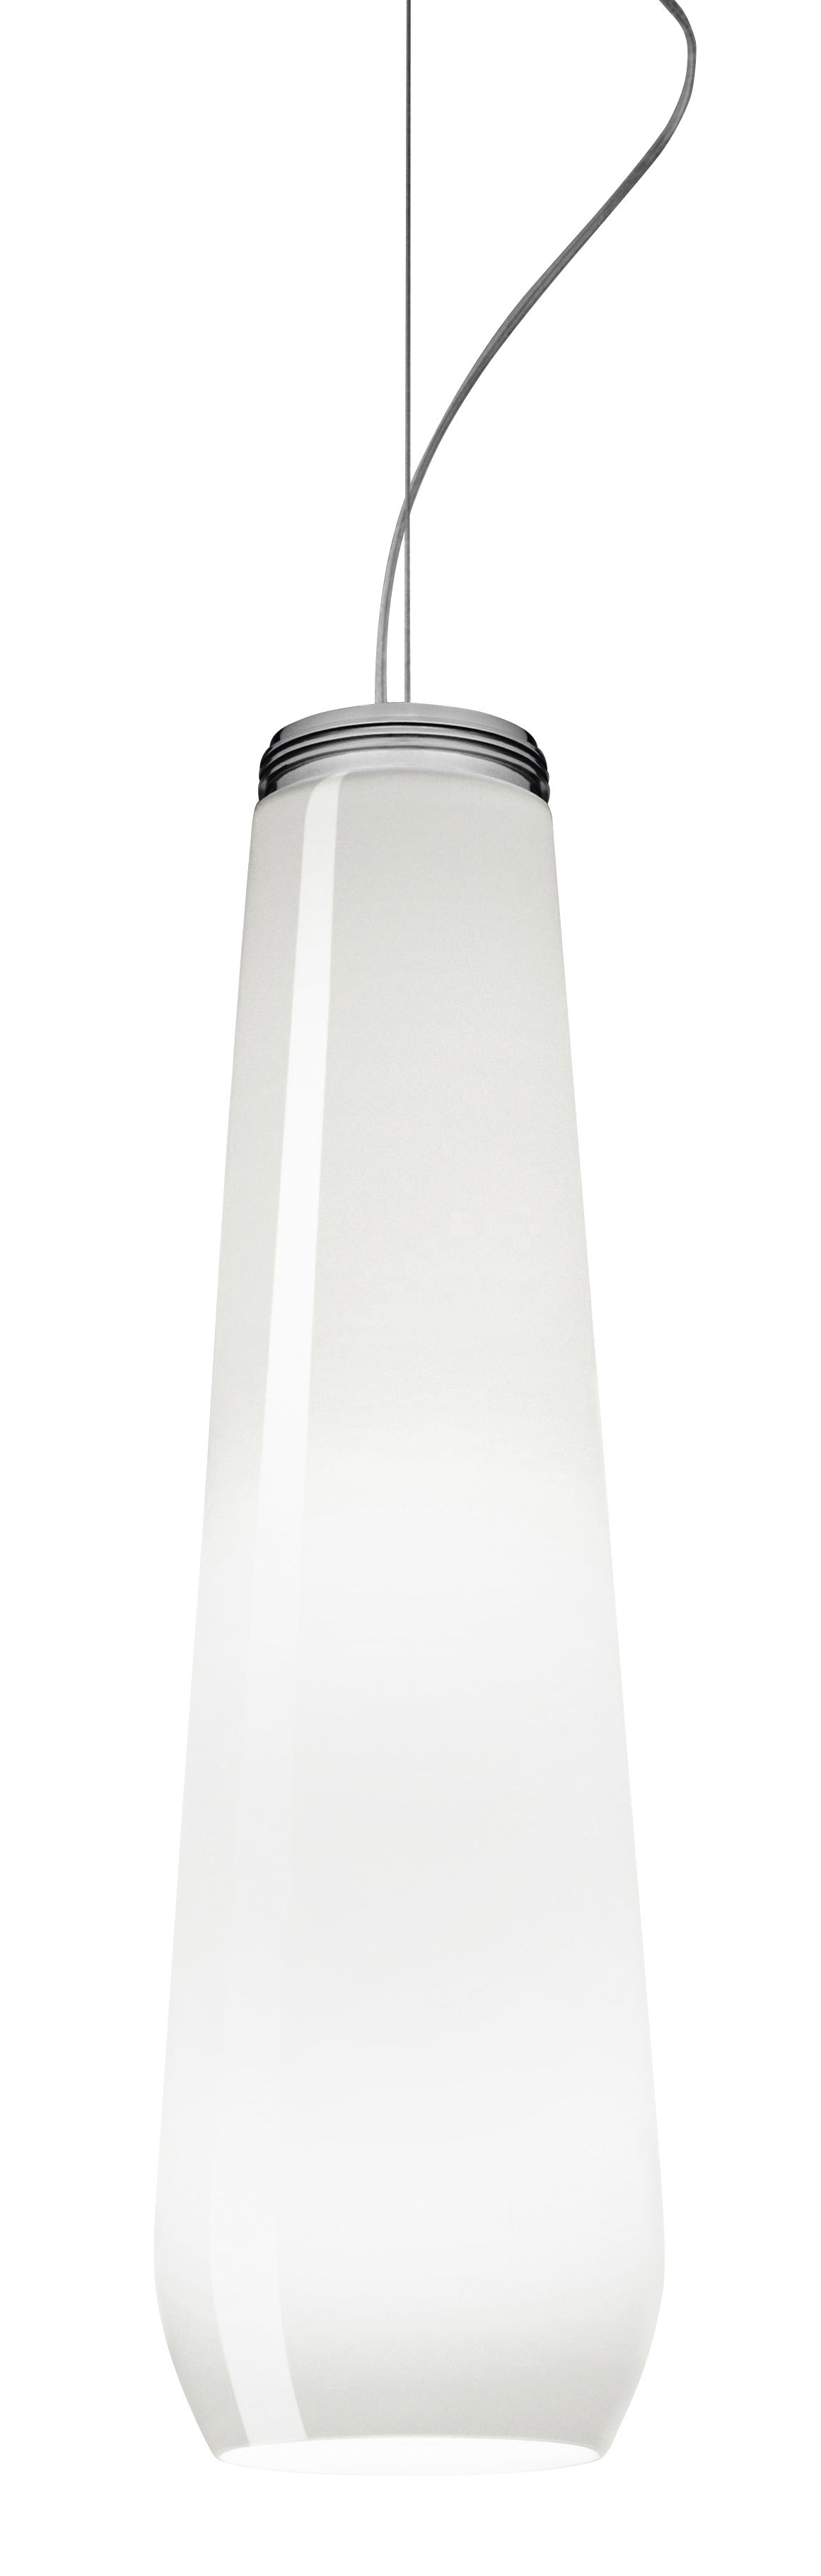 Lighting - Pendant Lighting - Glass Drop Pendant - Ø 13 x H 45 cm by Diesel with Foscarini - White - Blown glass, Thermoplastic